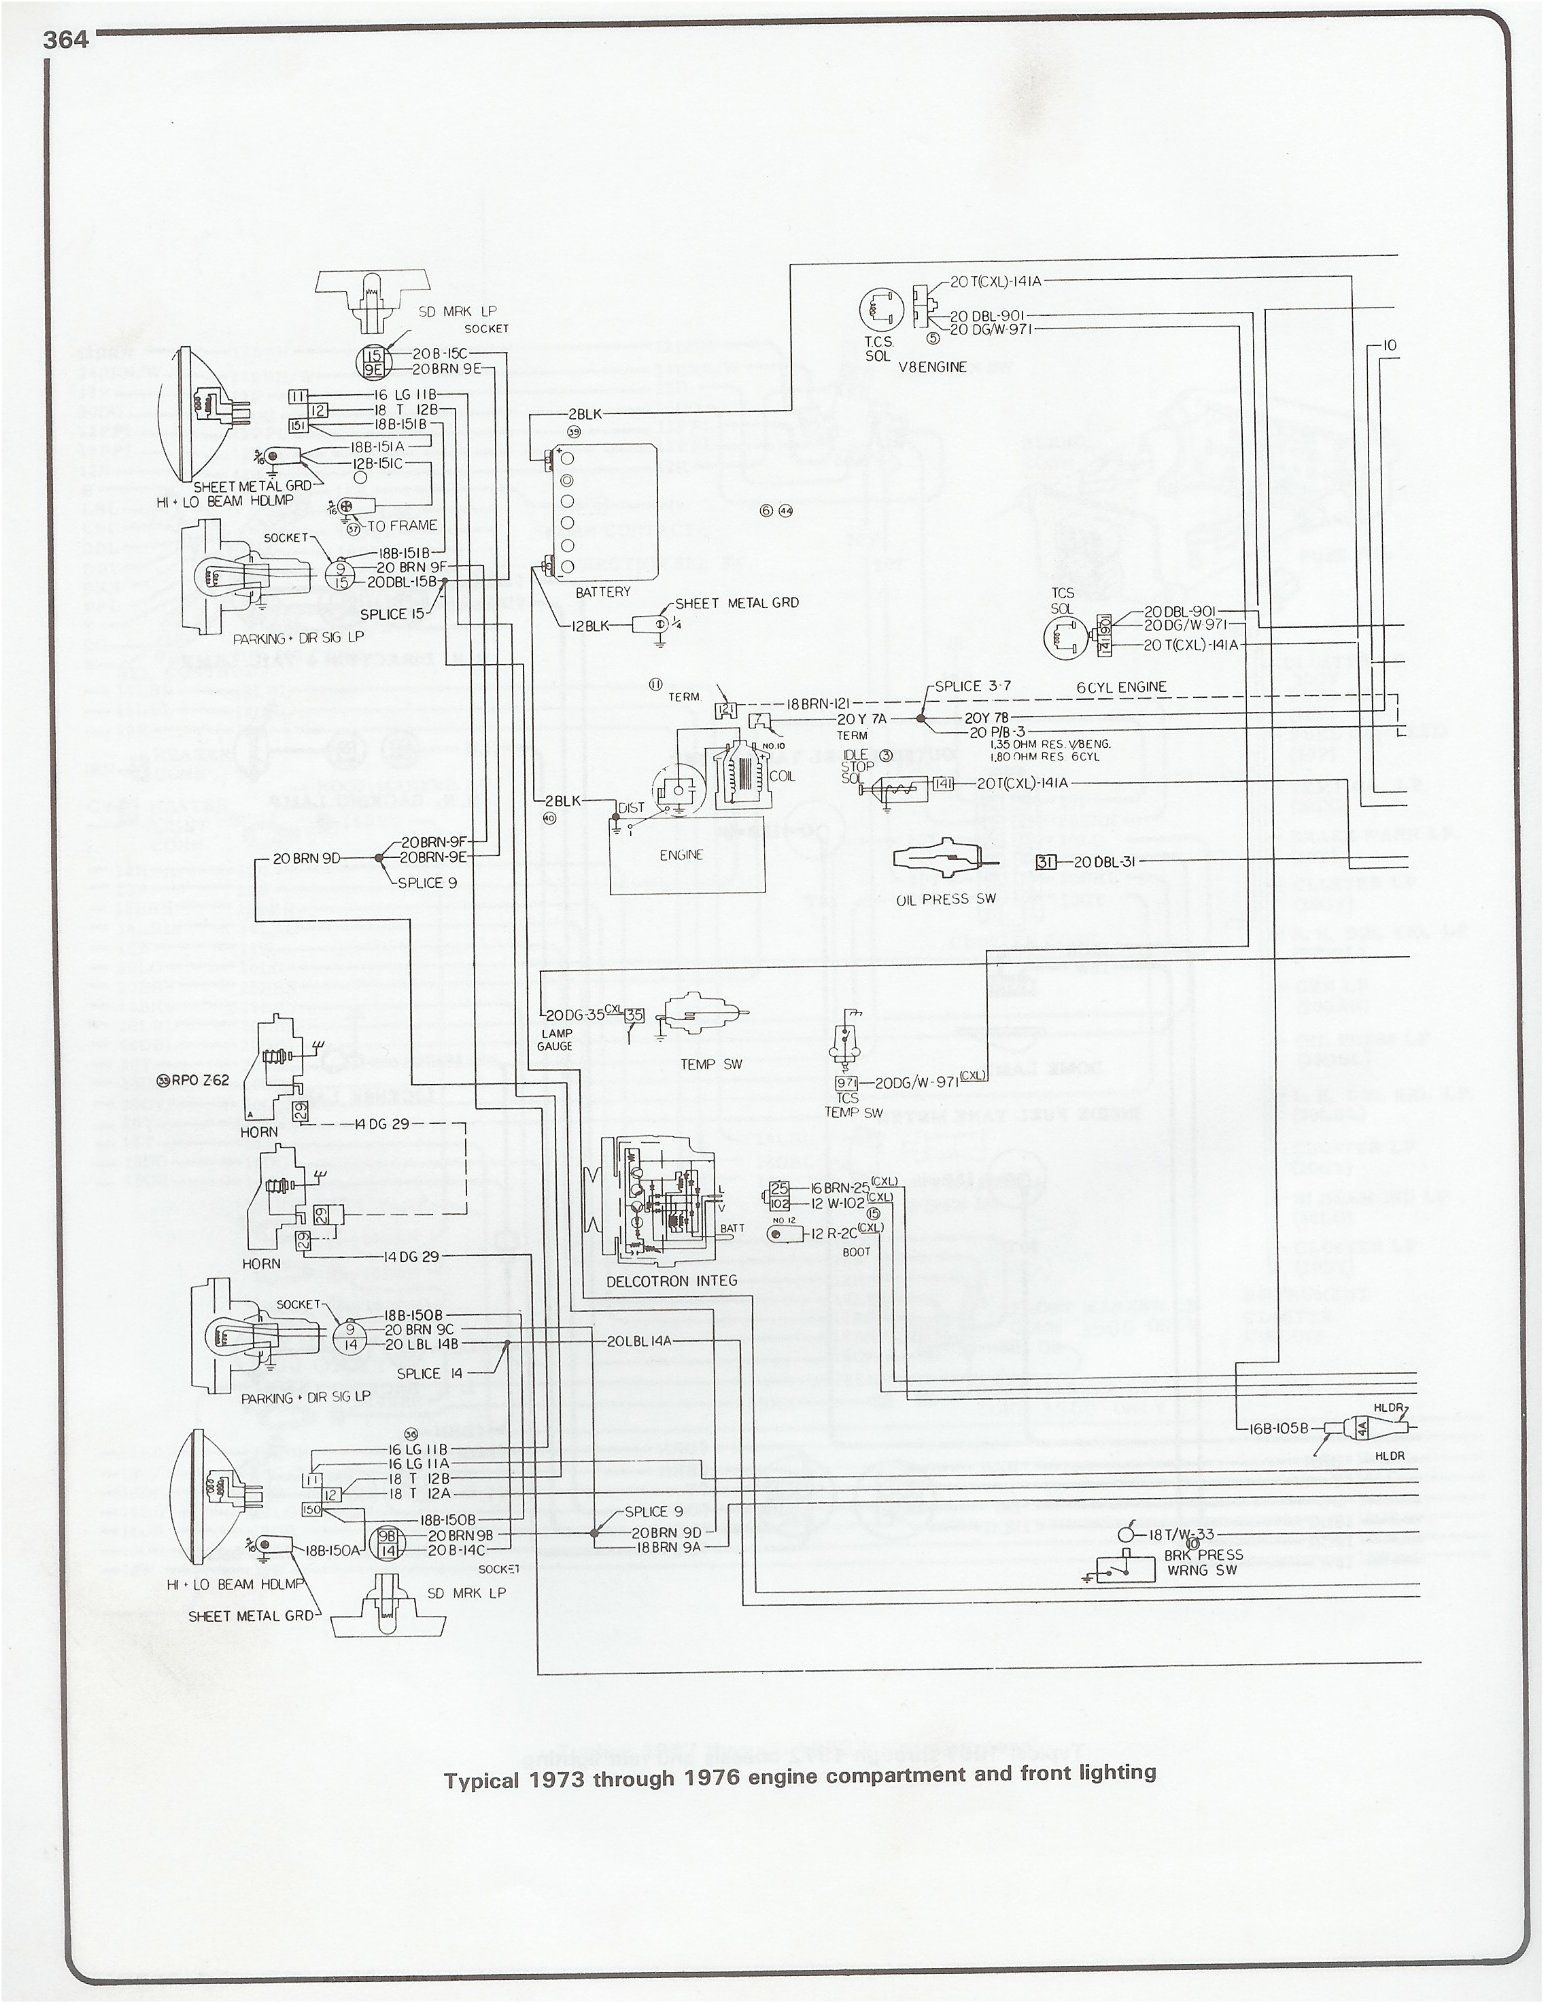 Wiring Diagram 1973 - 1976 Chevy Pickup #Chevy #Wiring #Diagram | 1976 chevy  truck, 1973 chevy truck, Chevy pickups